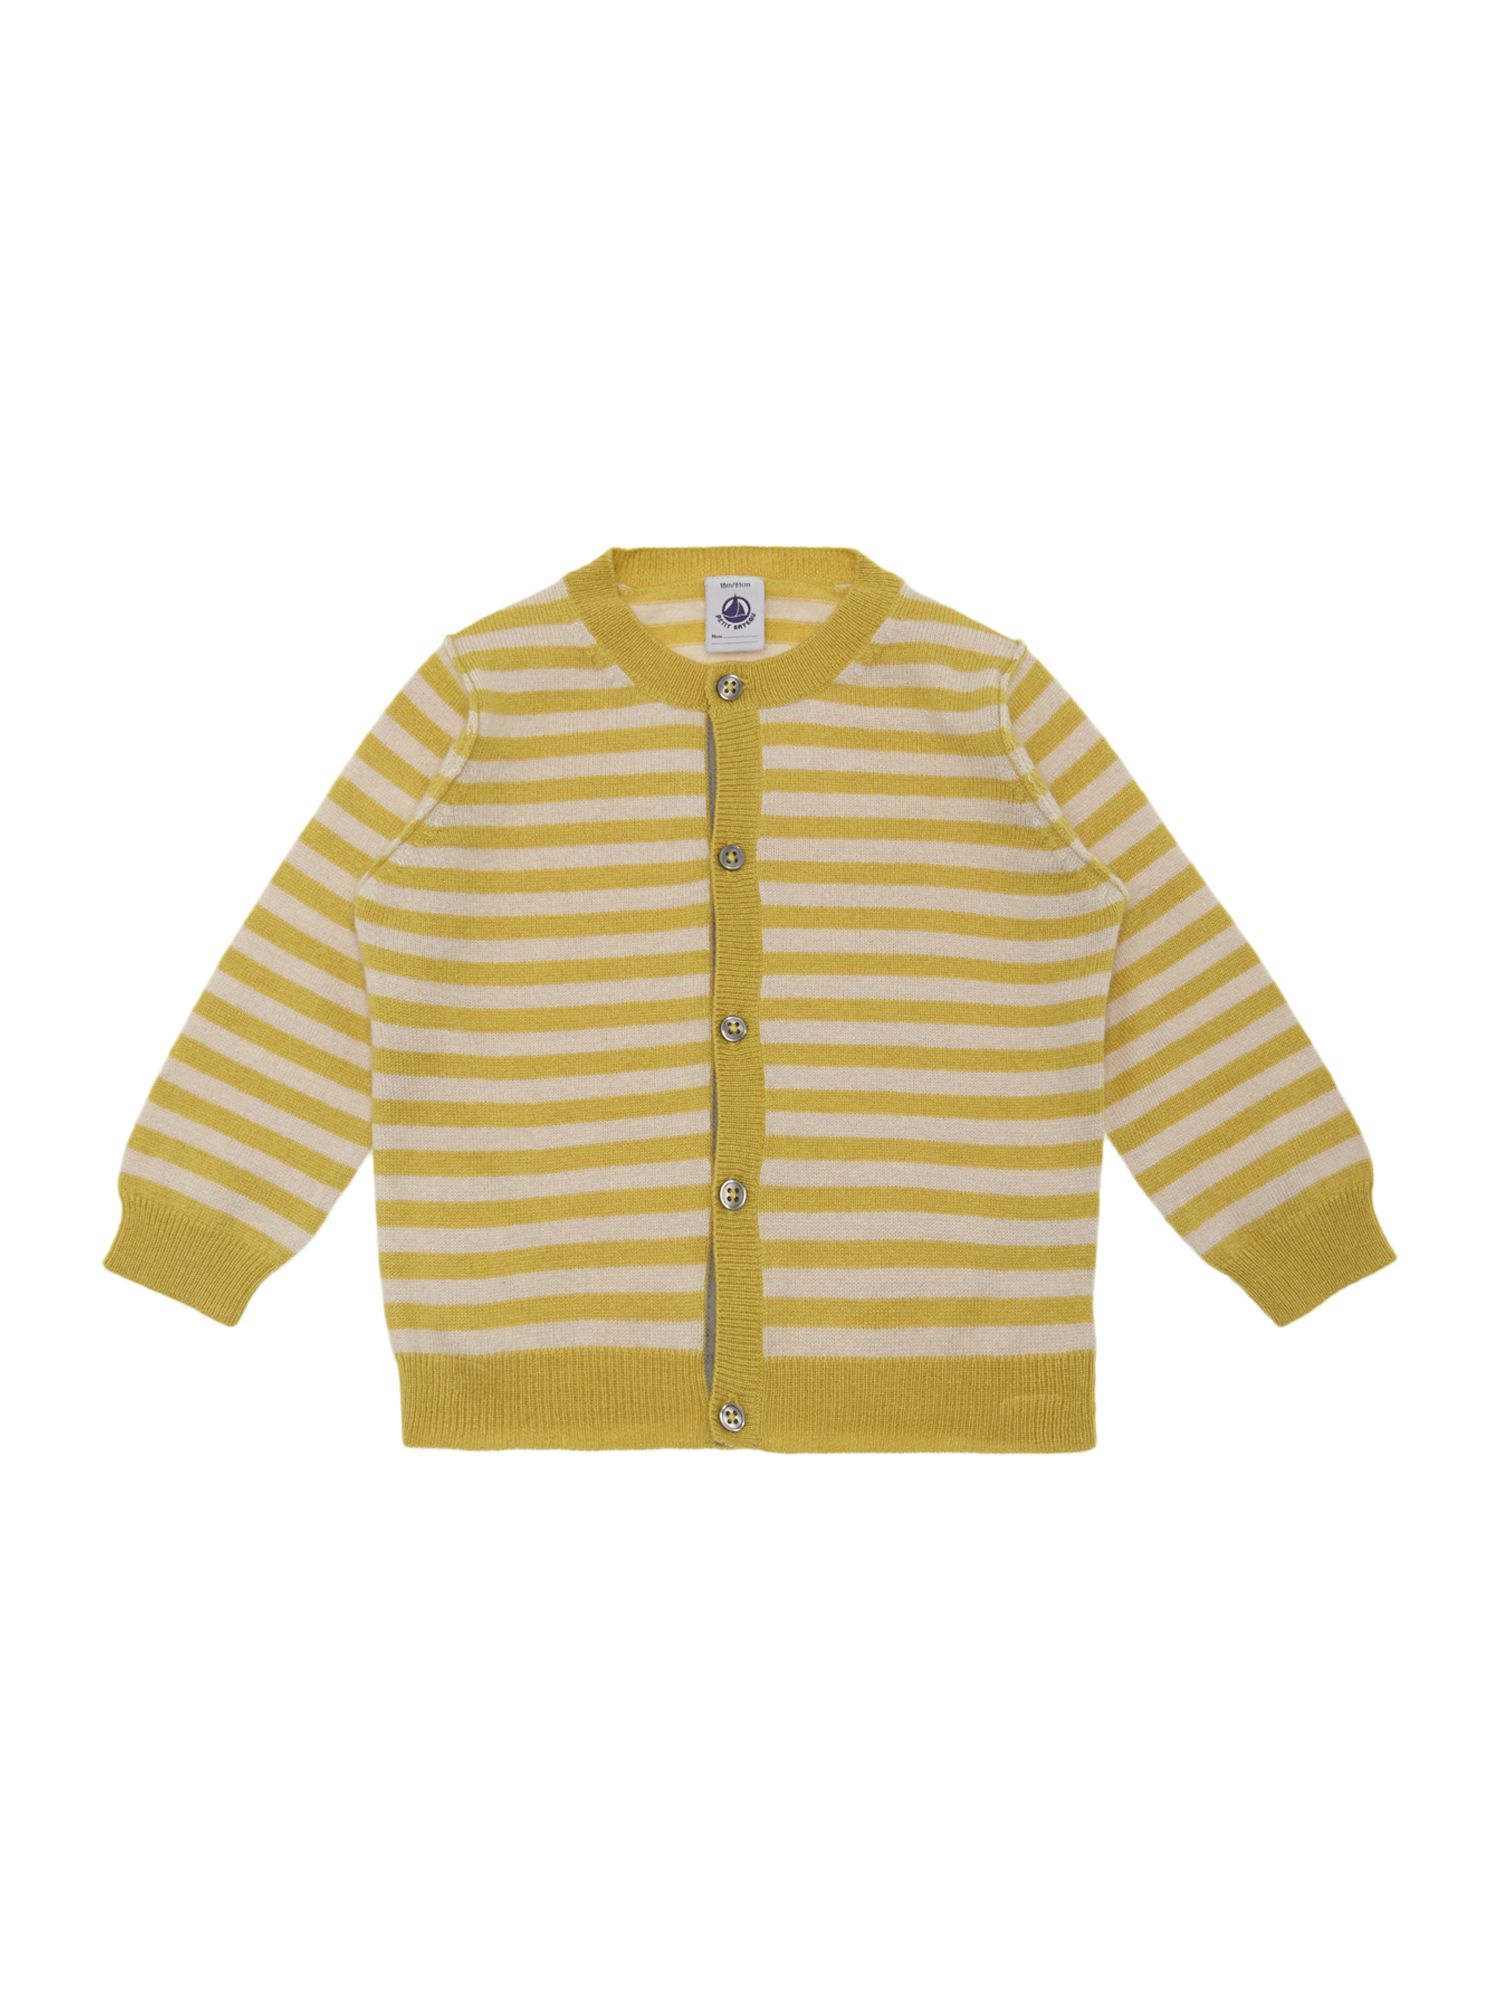 Unisex baby striped cardigan